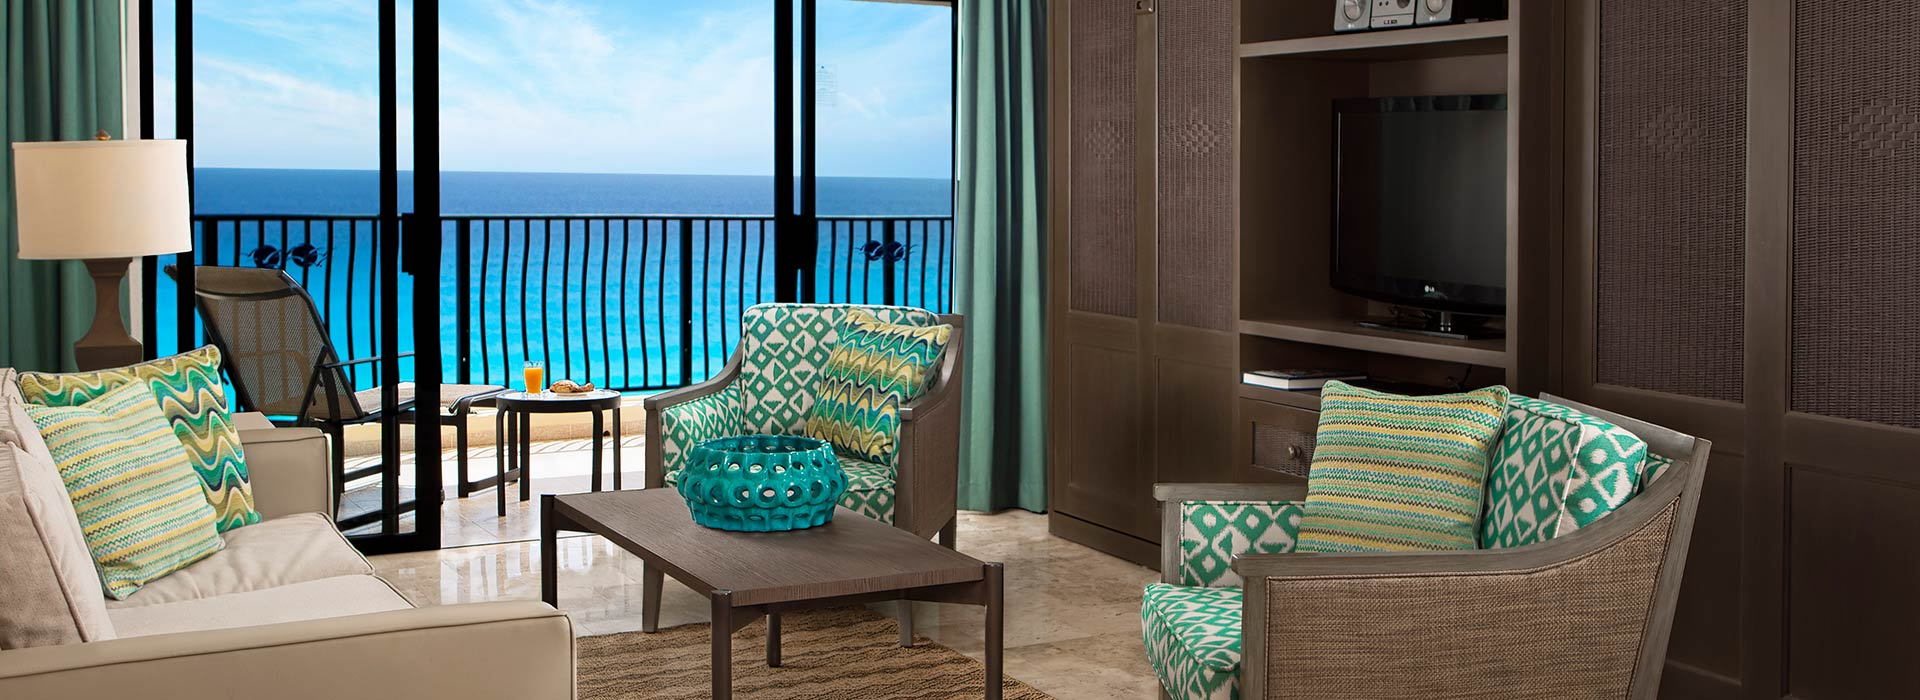 Beachfront villas and suites at our resort in Cancun beachfront setting with beautiful Caribbean